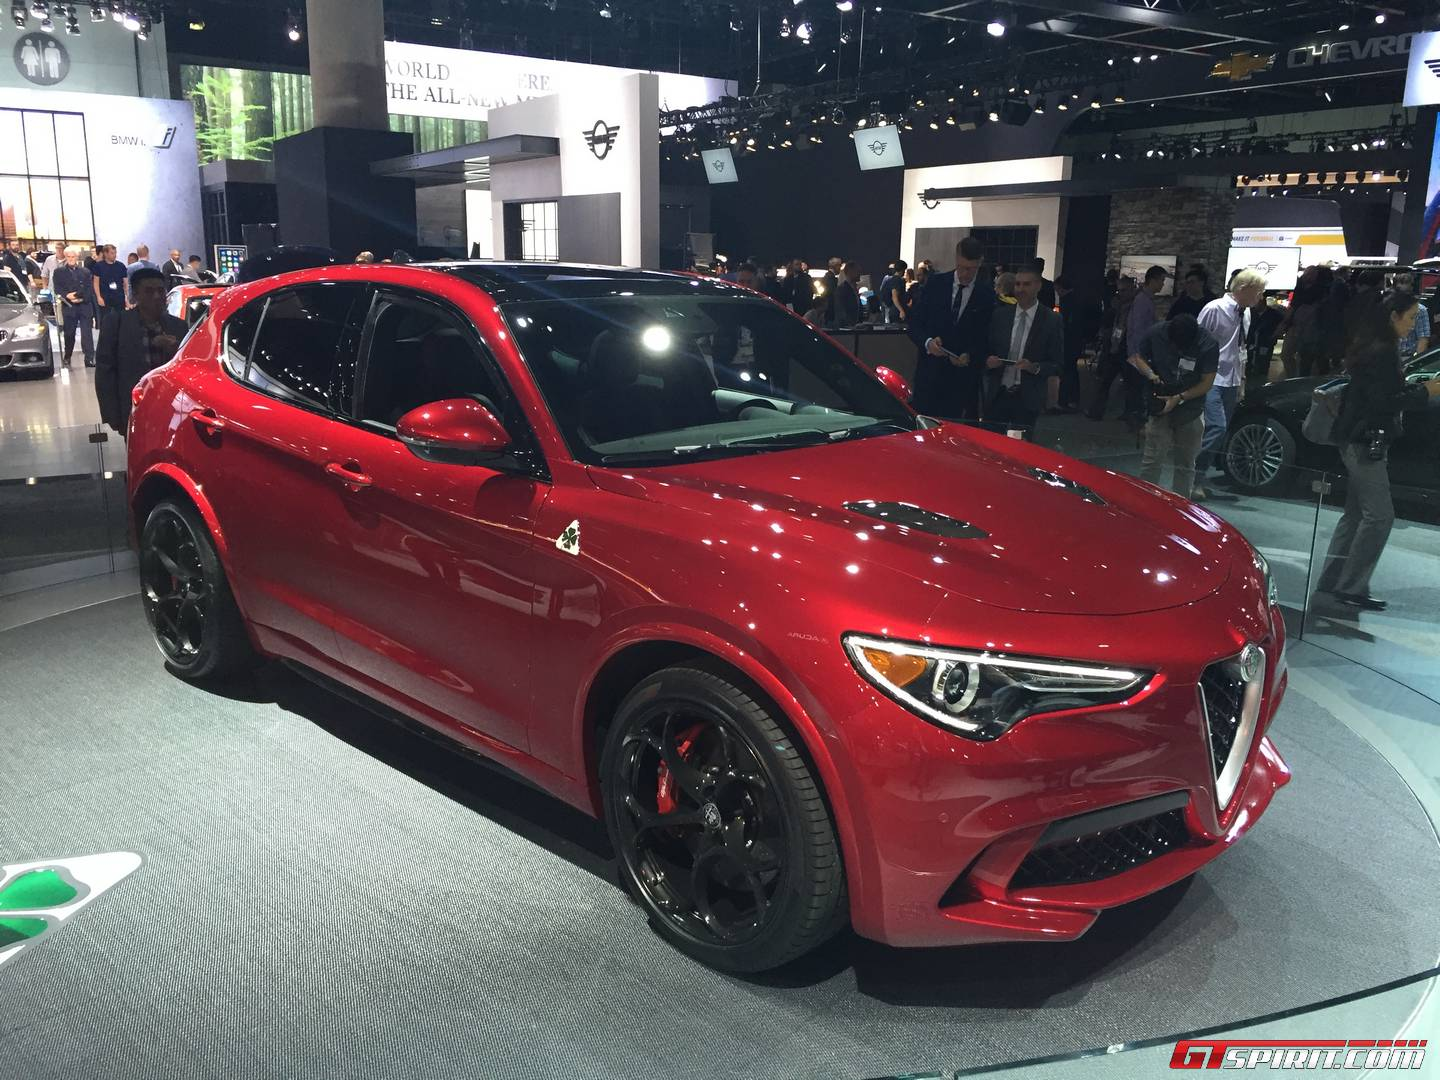 Alfa Romeo Stelvio Is Basically The Giulia SUV